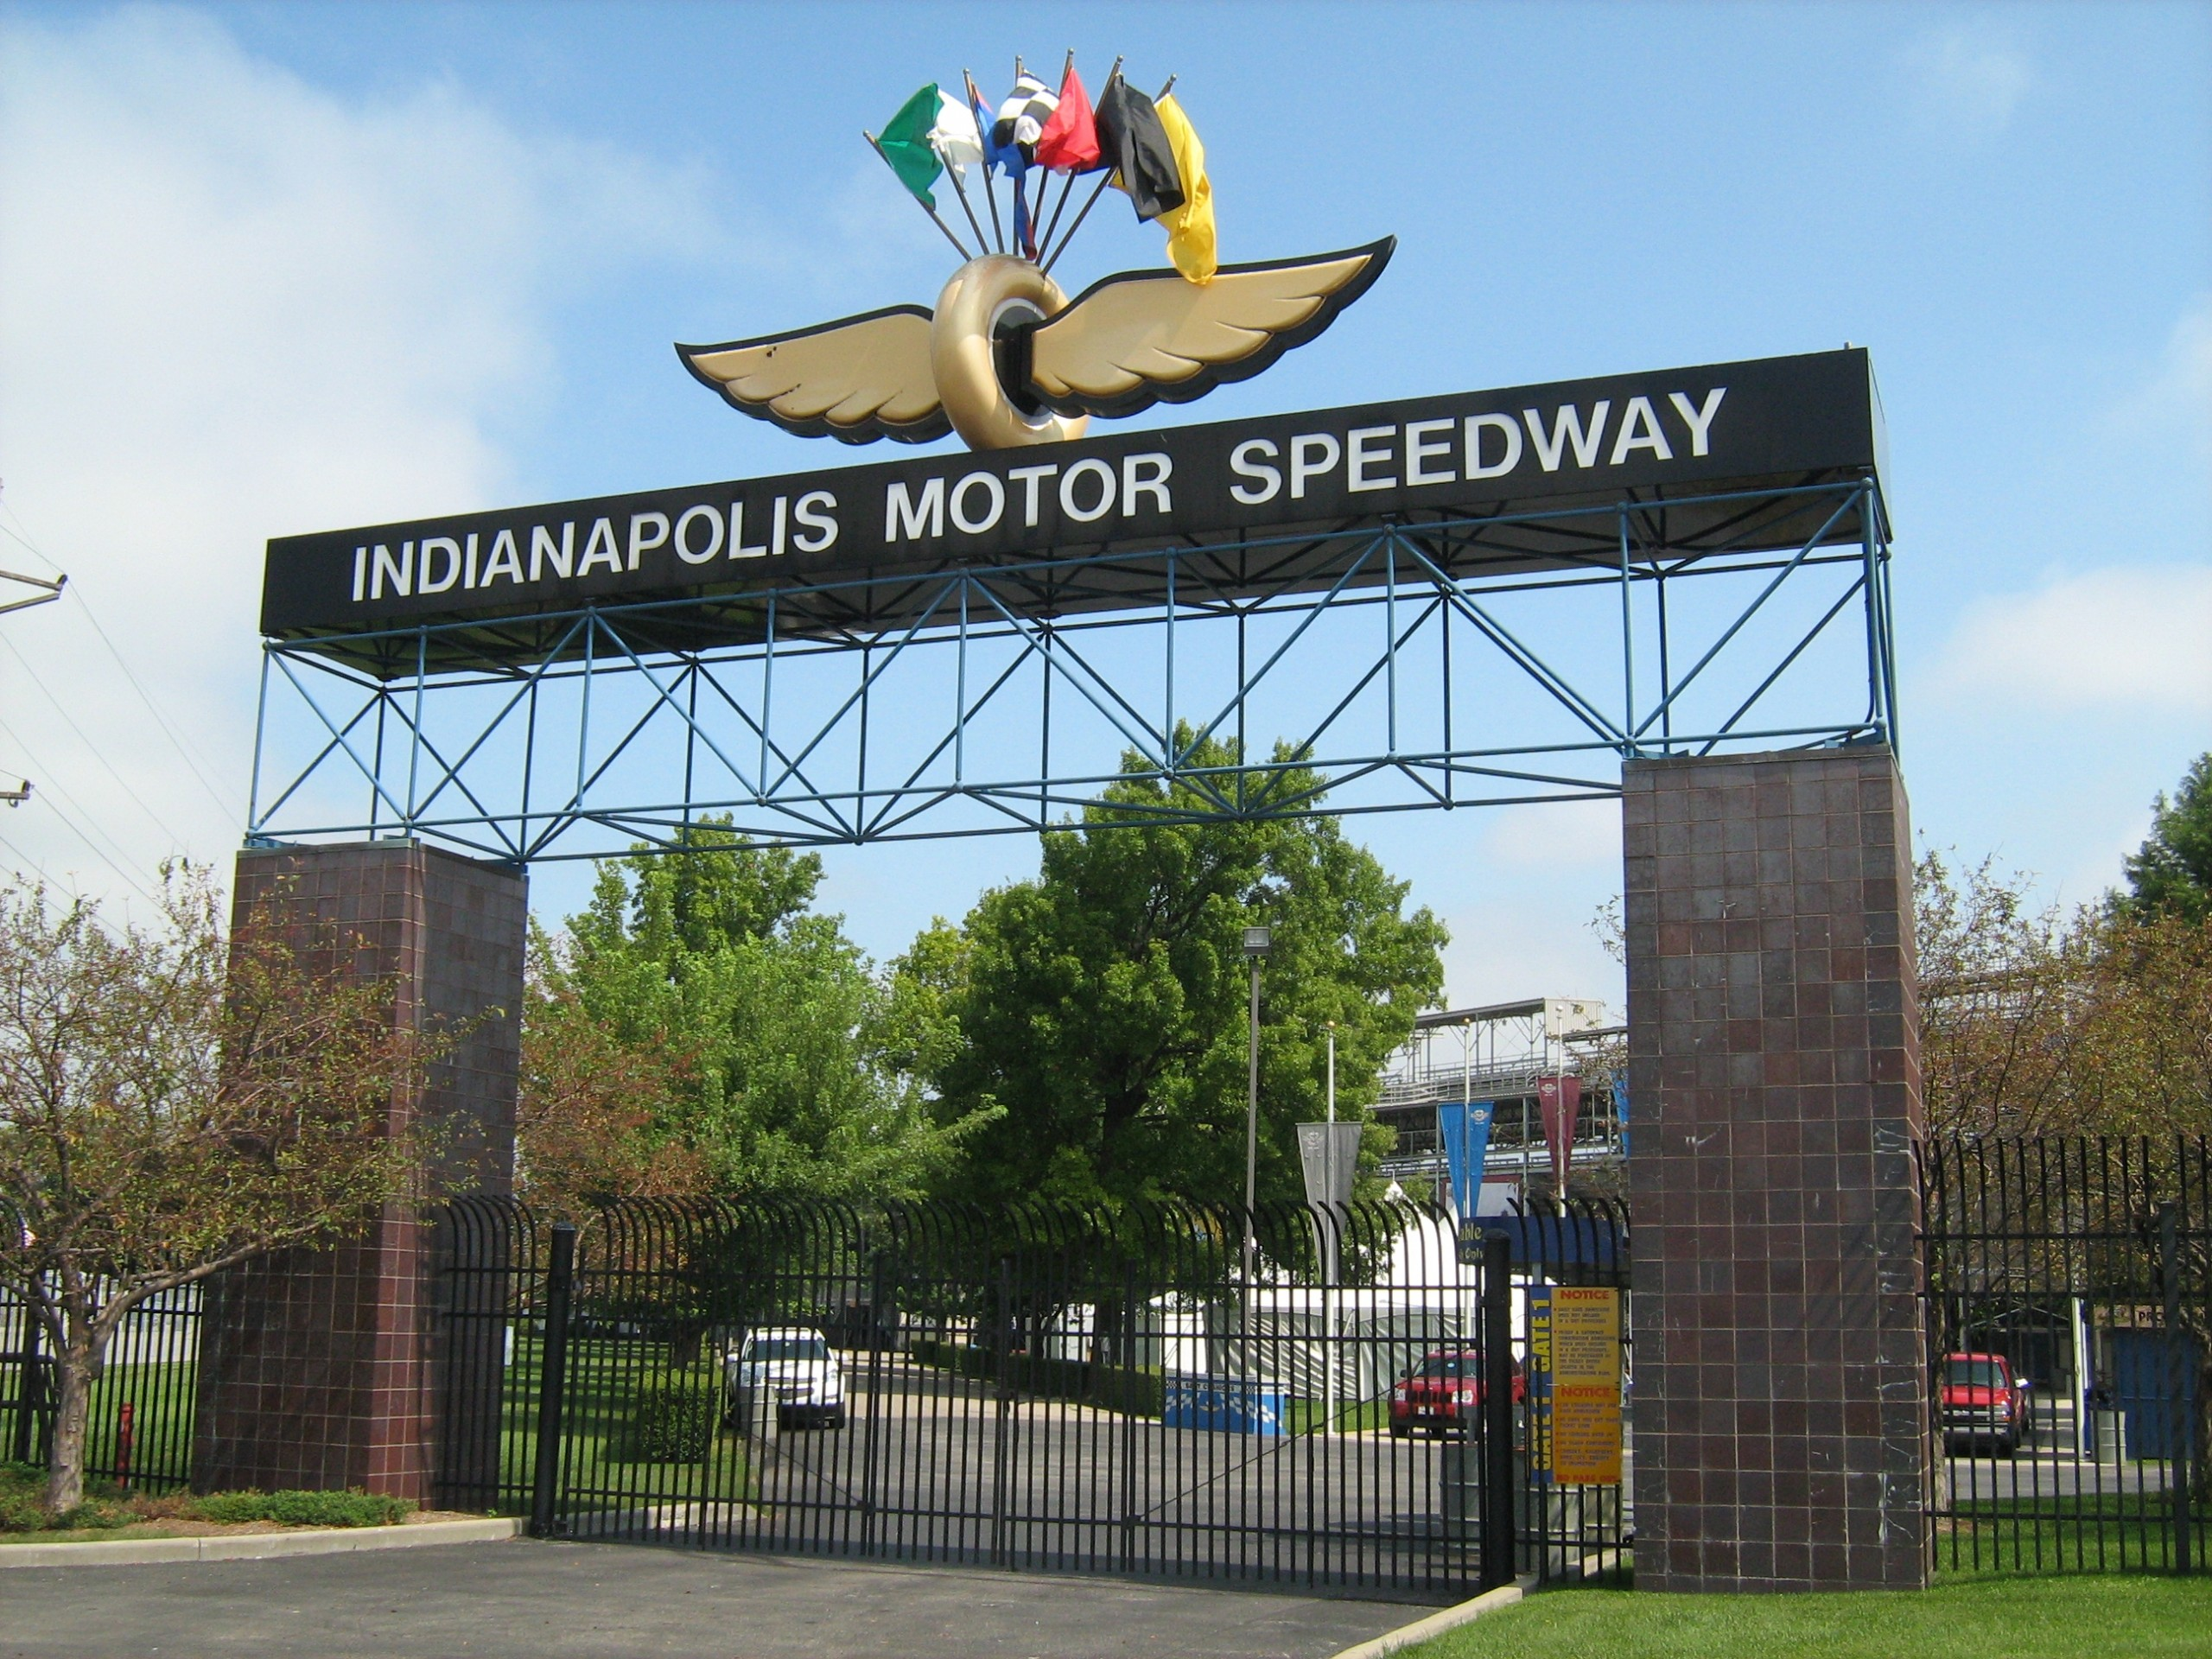 The Indy 500 Is Upon Us!!!